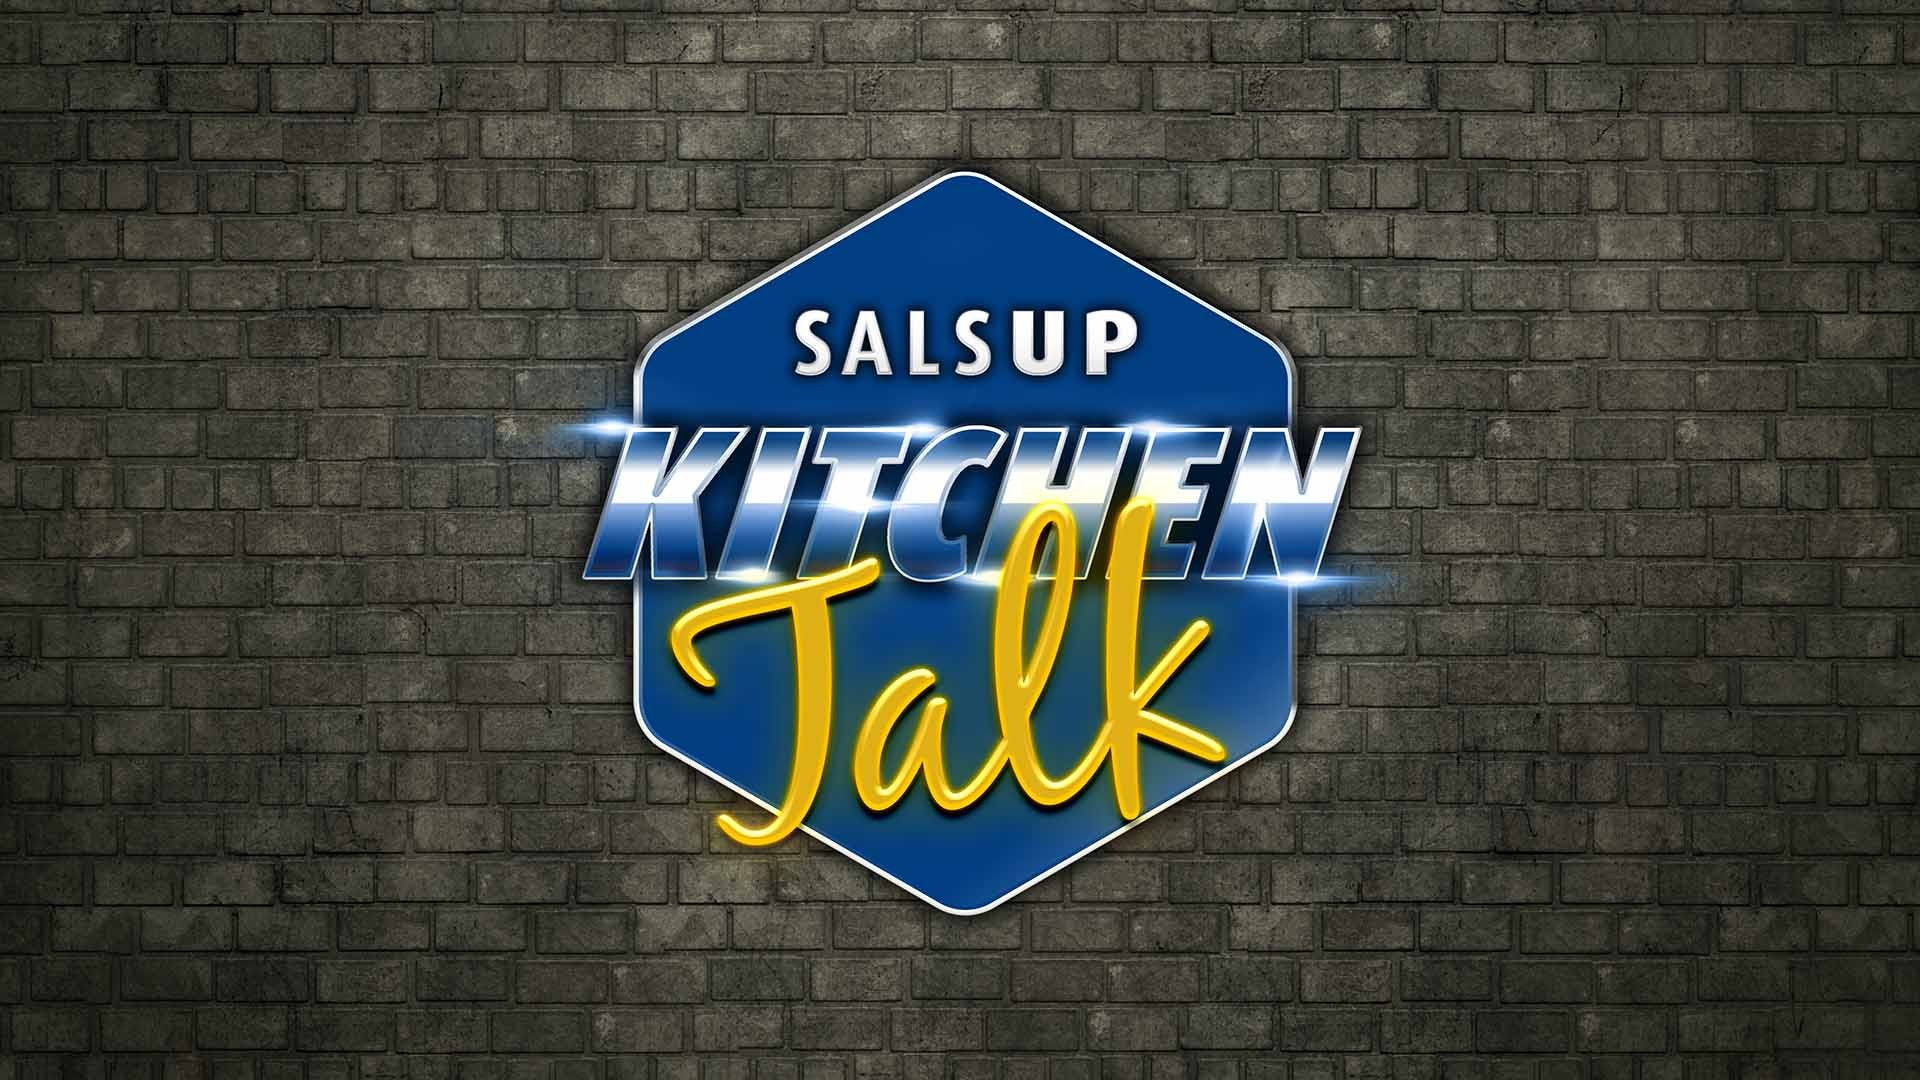 SalsUp Kitchen Talk